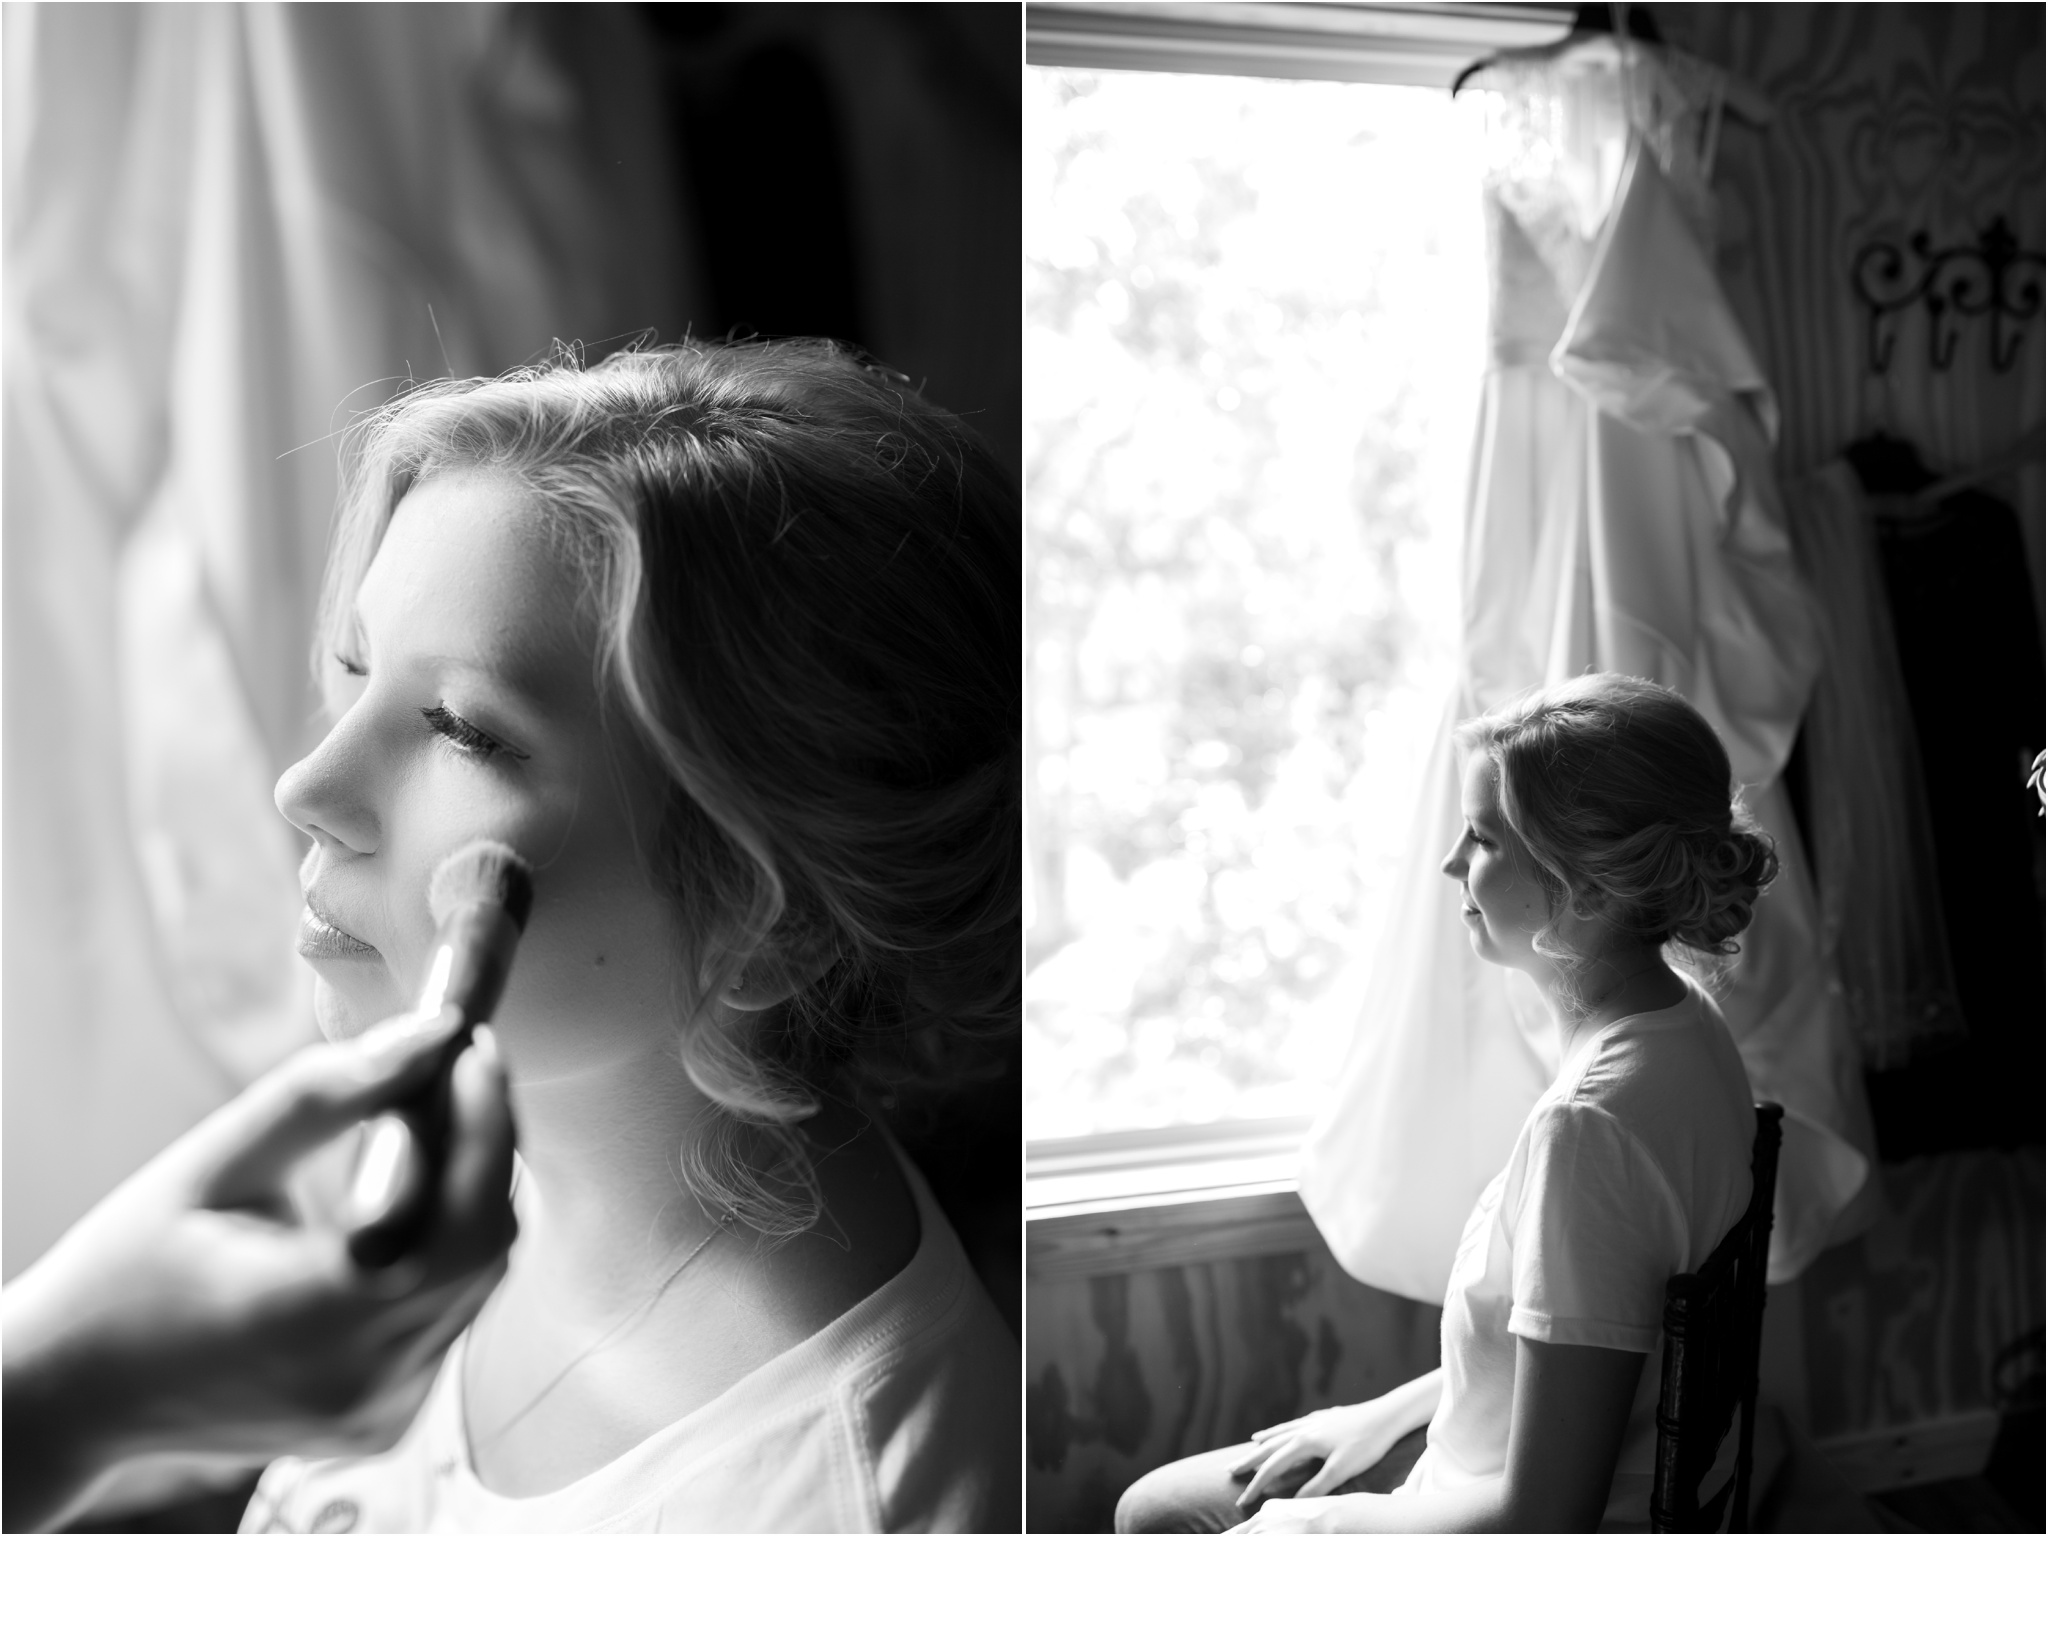 Rainey_Gregg_Photography_St._Simons_Island_Georgia_California_Wedding_Portrait_Photography_0471.jpg